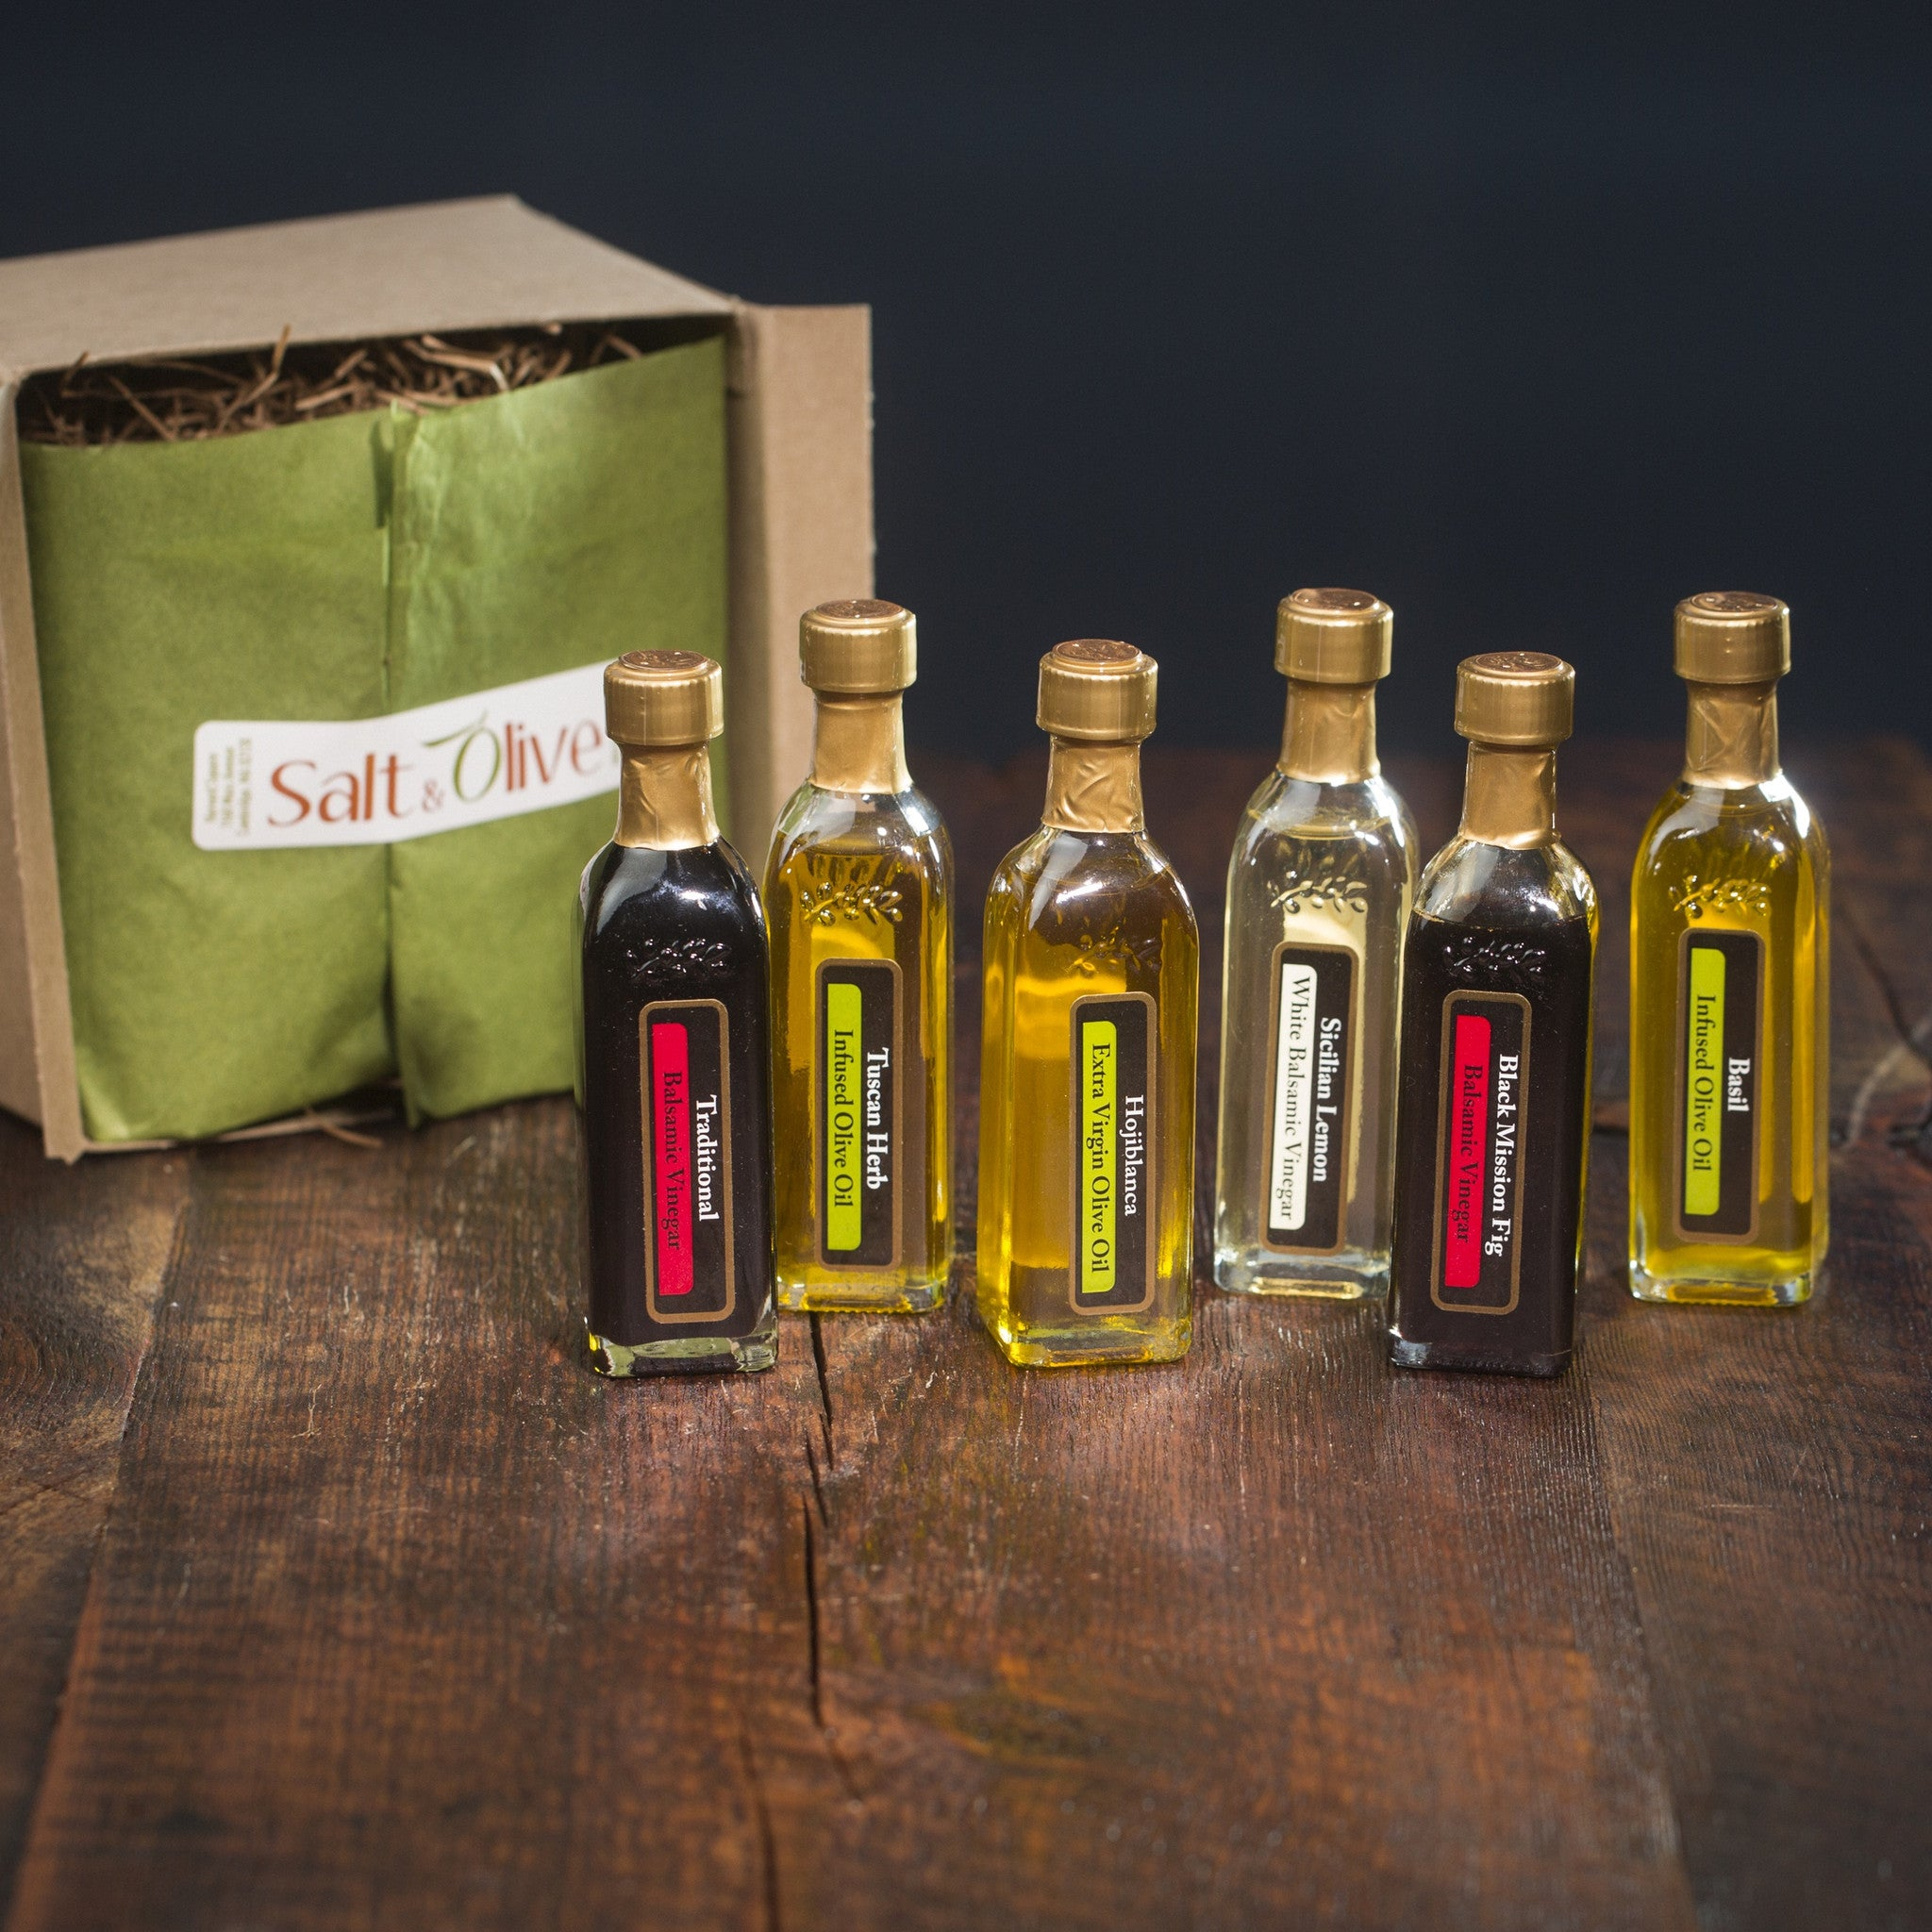 Best Sellers EVOO and Aged Balsamic